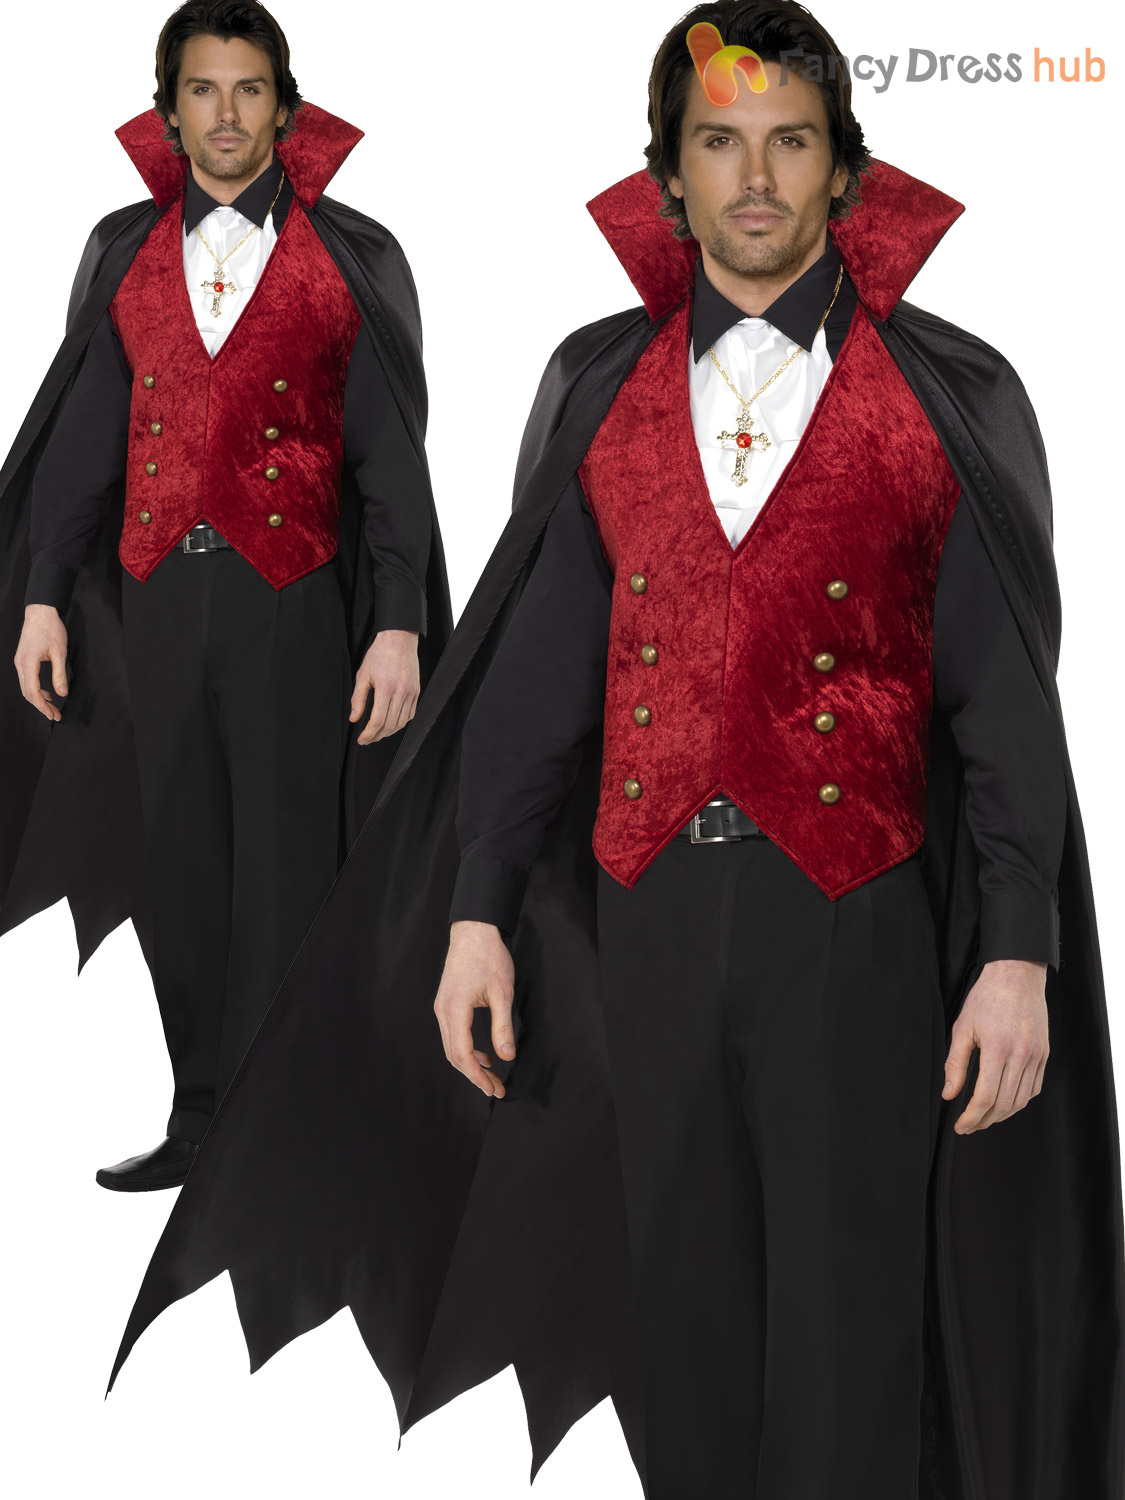 Adult mens deluxe count dracula vampire costume halloween fancy adult mens deluxe count dracula vampire costume halloween solutioingenieria Choice Image